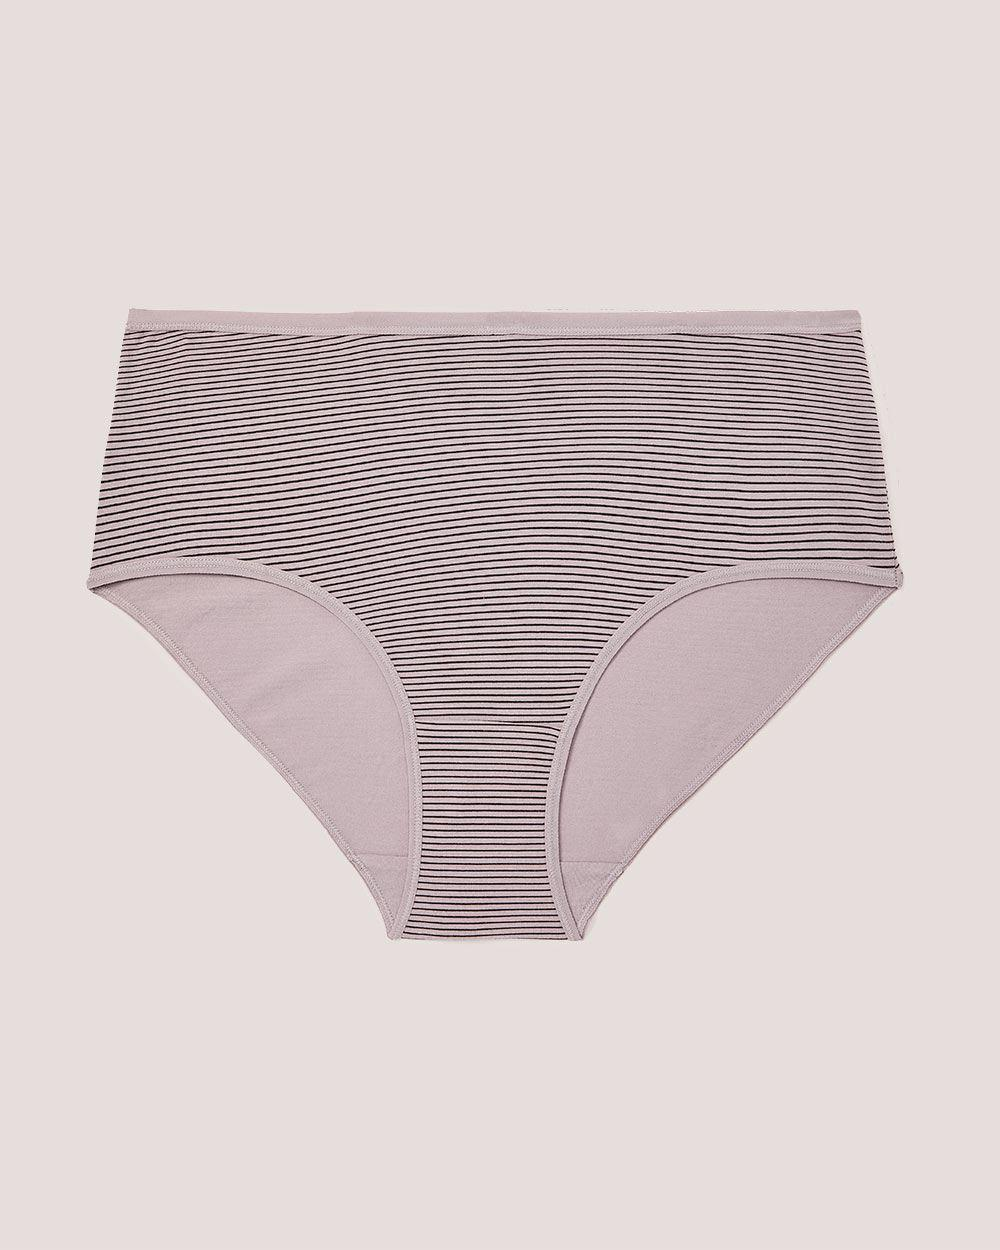 10aef5ac2 Addition Elle. Women s Full Brief Cotton Panty - Déesse Collection